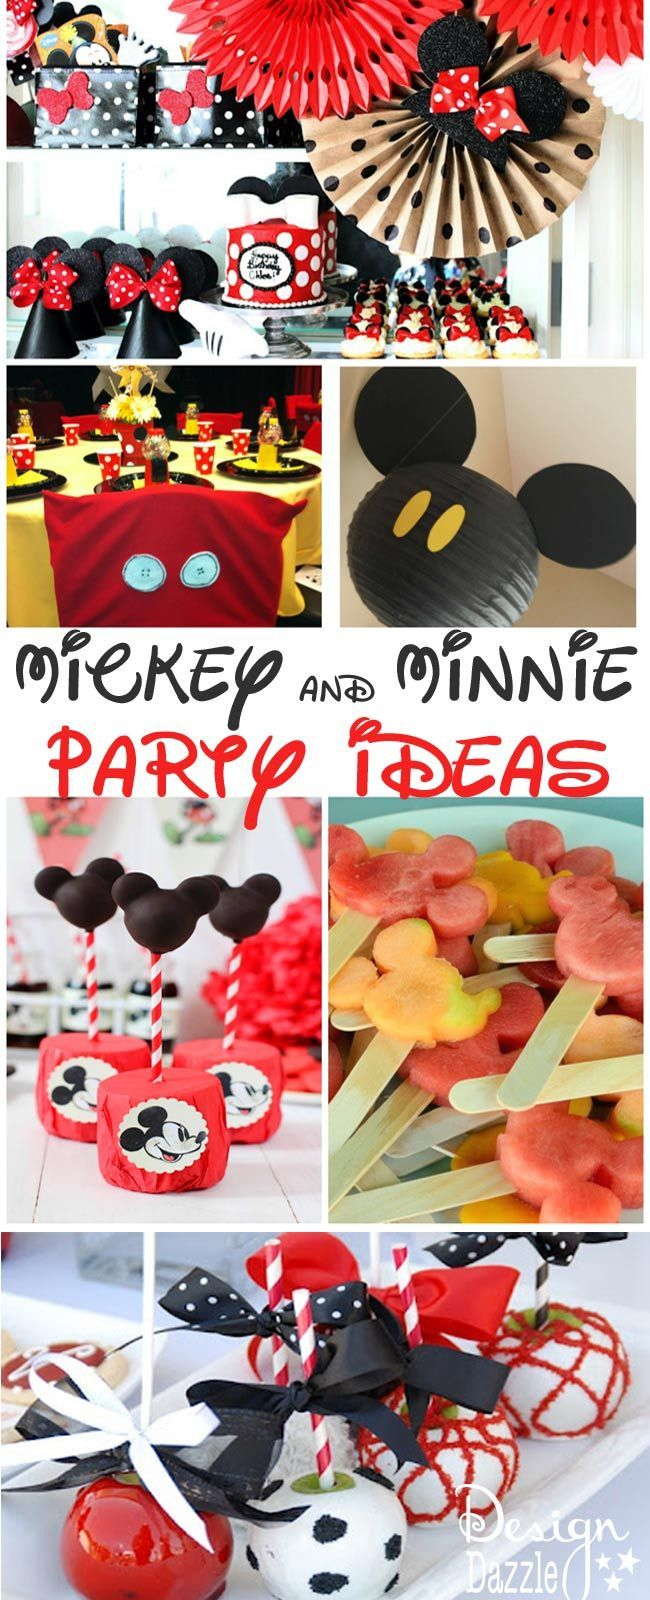 Mickey and Minnie Mouse Party and Food Decor Ideas - Design Dazzle http://www.designdazzle.com/2014/03/mickey-minnie-mouse-party-ideas/